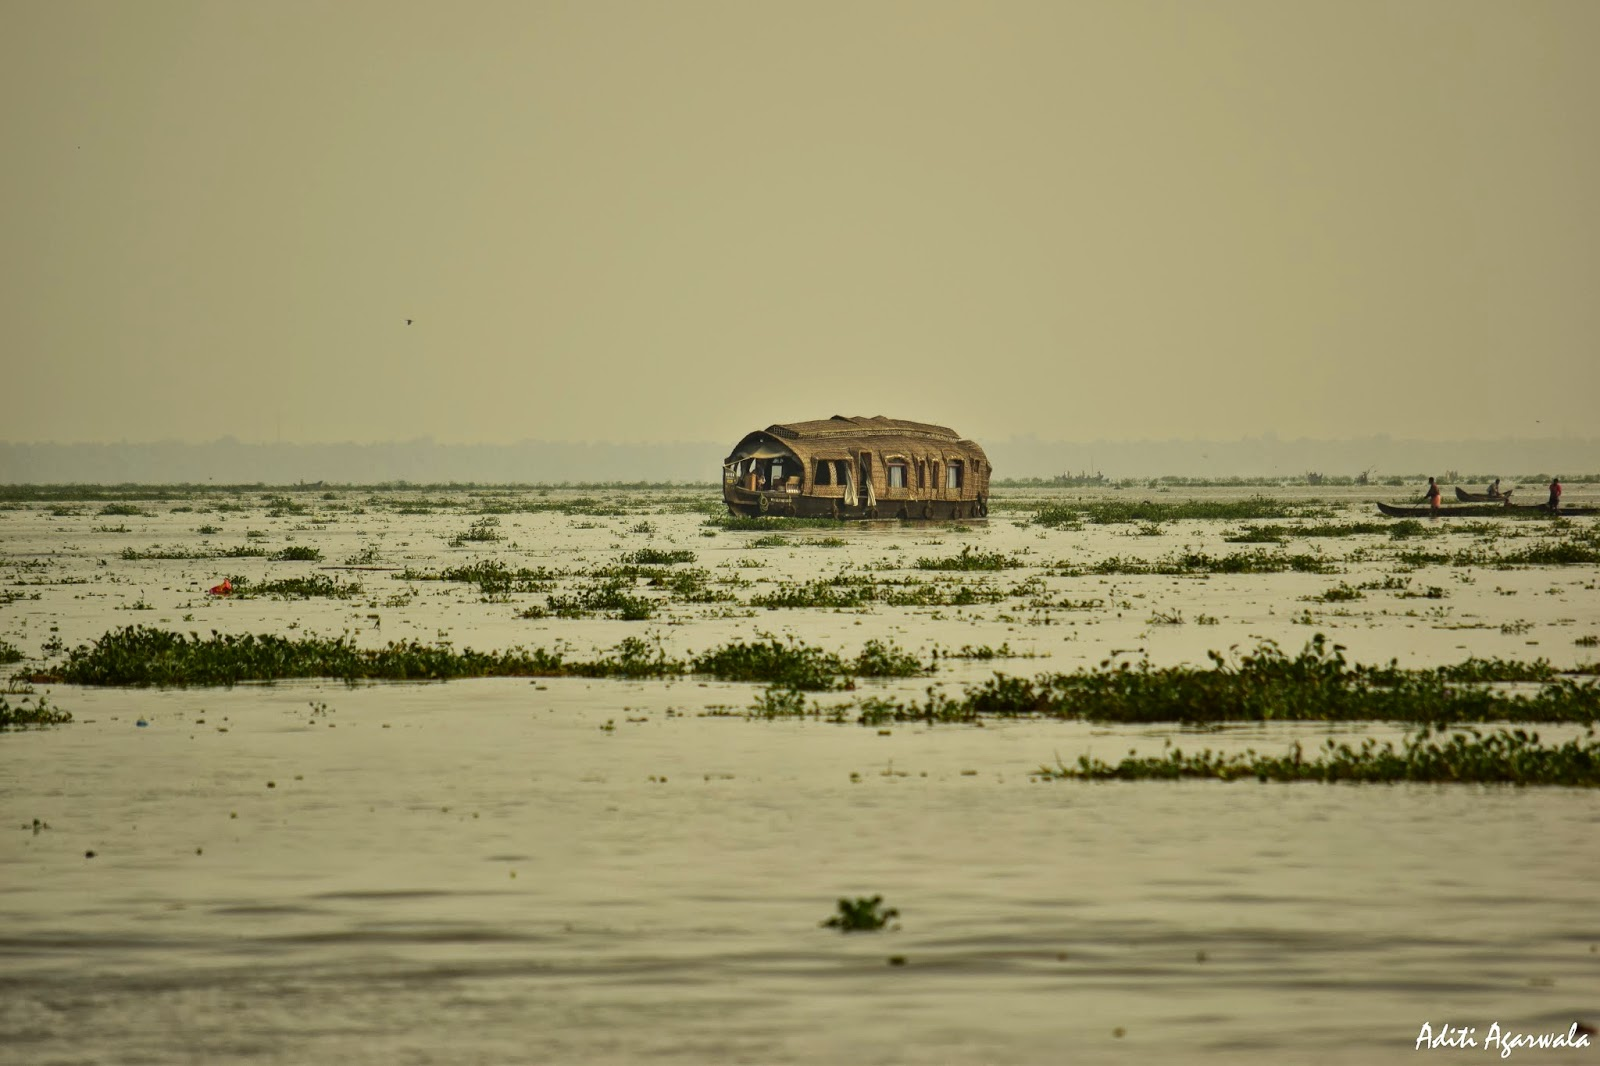 A single houseboat on the backwaters of Allepey, Kerala